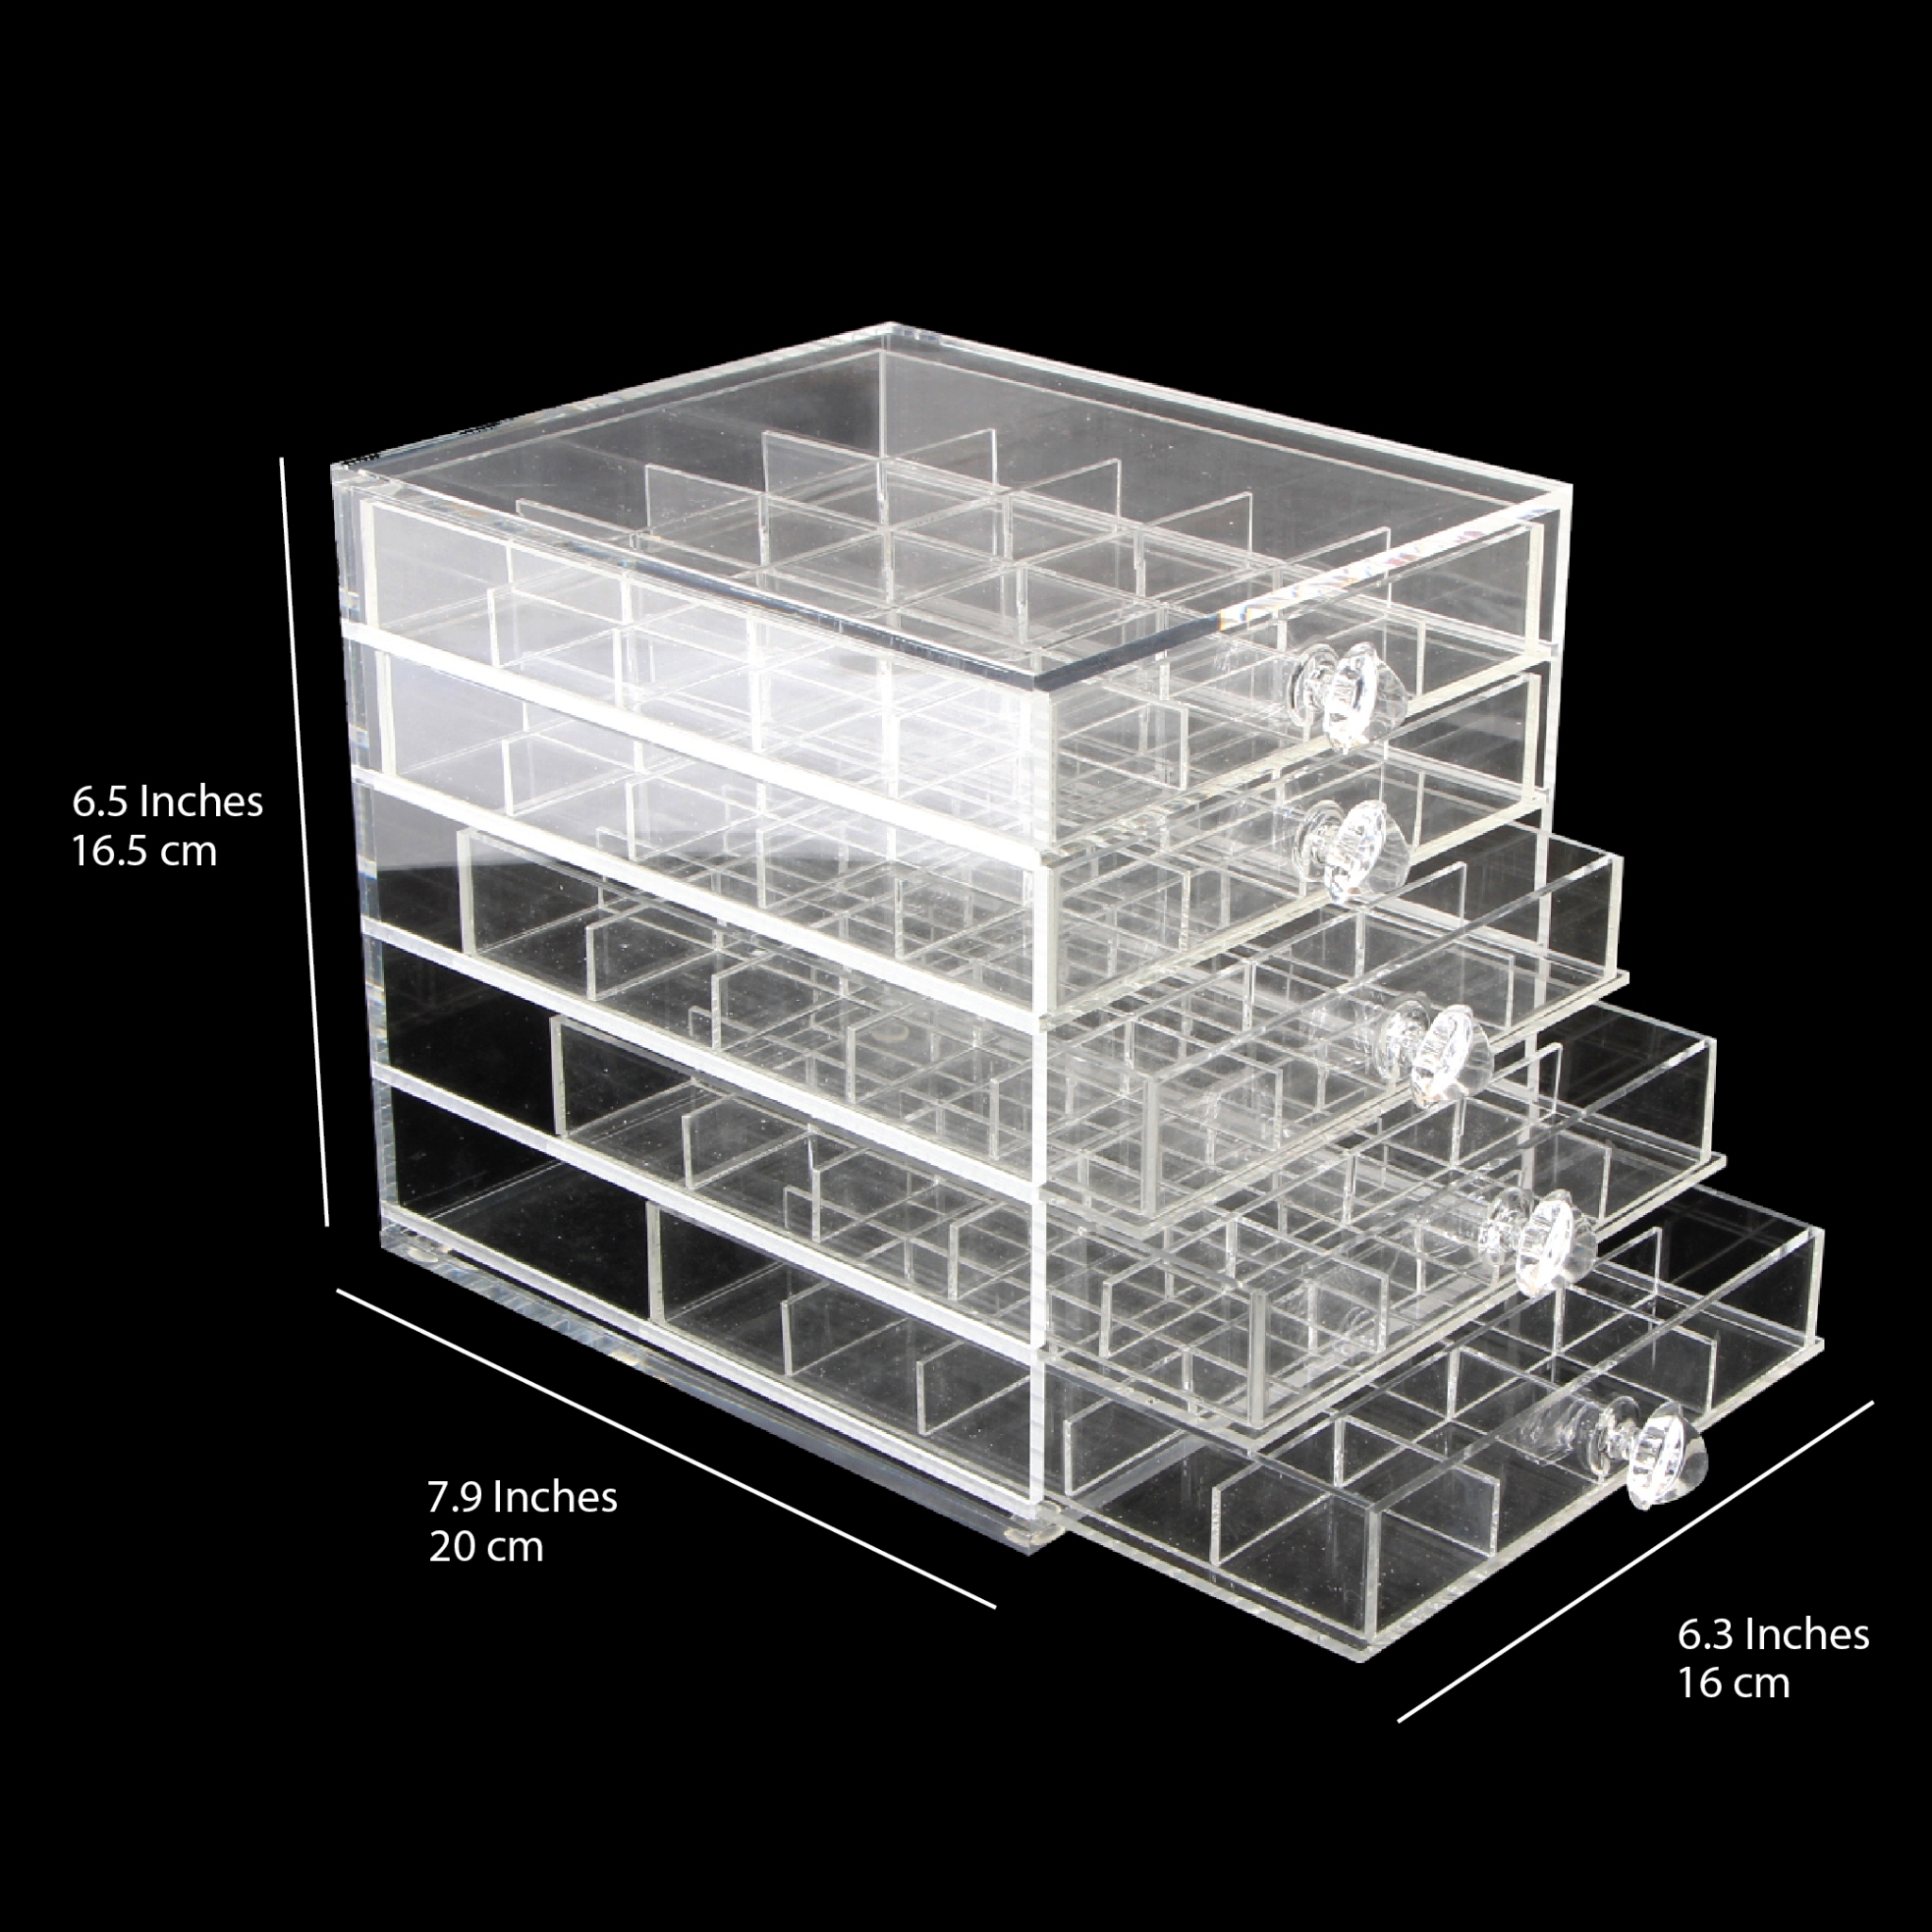 26164 - Acrylic#Accessories Box#150 Grids# 8 pcs/case